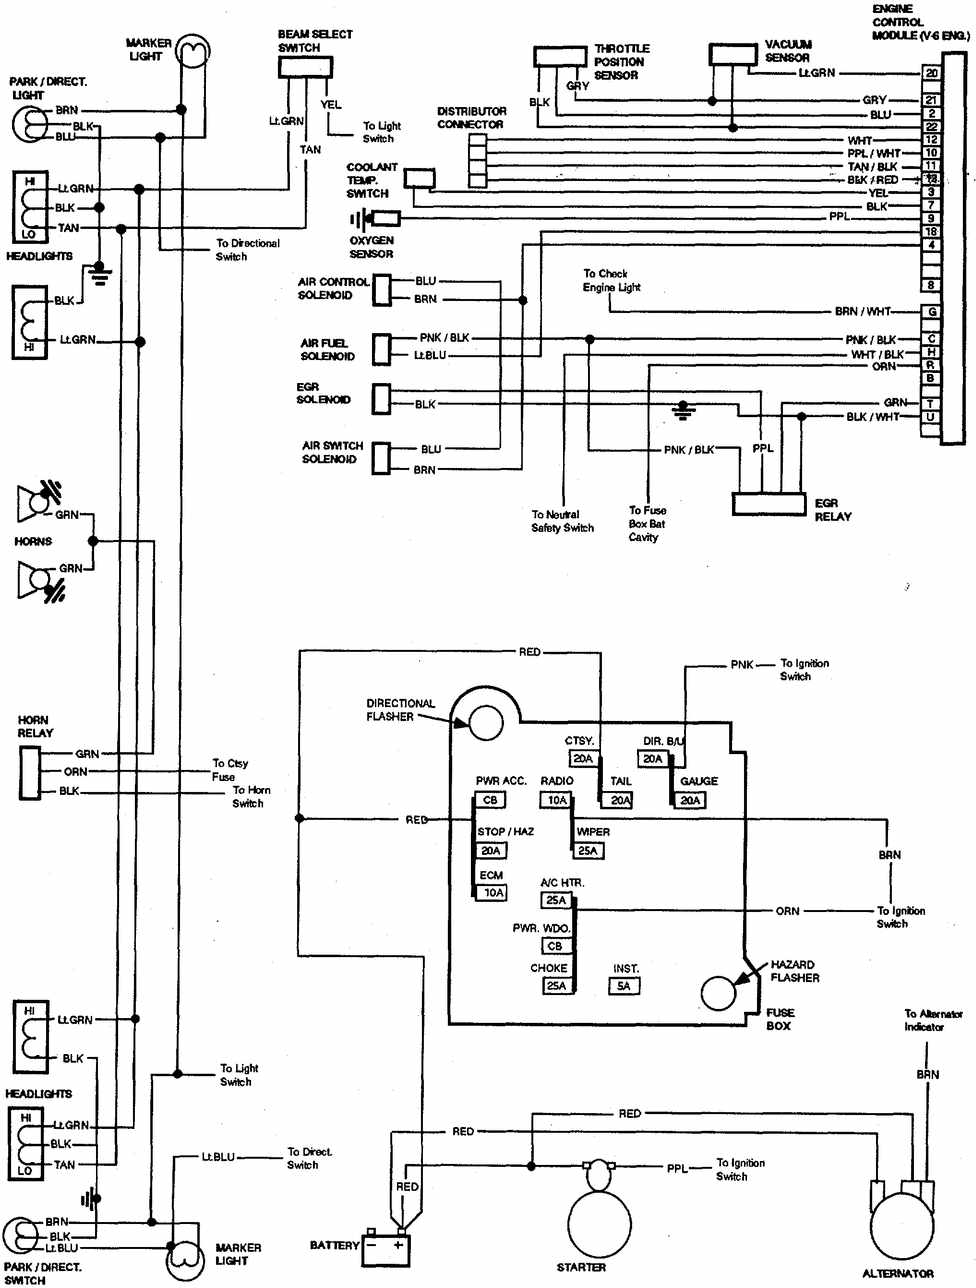 1978 Chevy Turn Signal Wiring Diagram Detailed Schematics Diagram Ignition  Switch Wiring Diagram 1978 F250 Steering Column Wiring Diagram